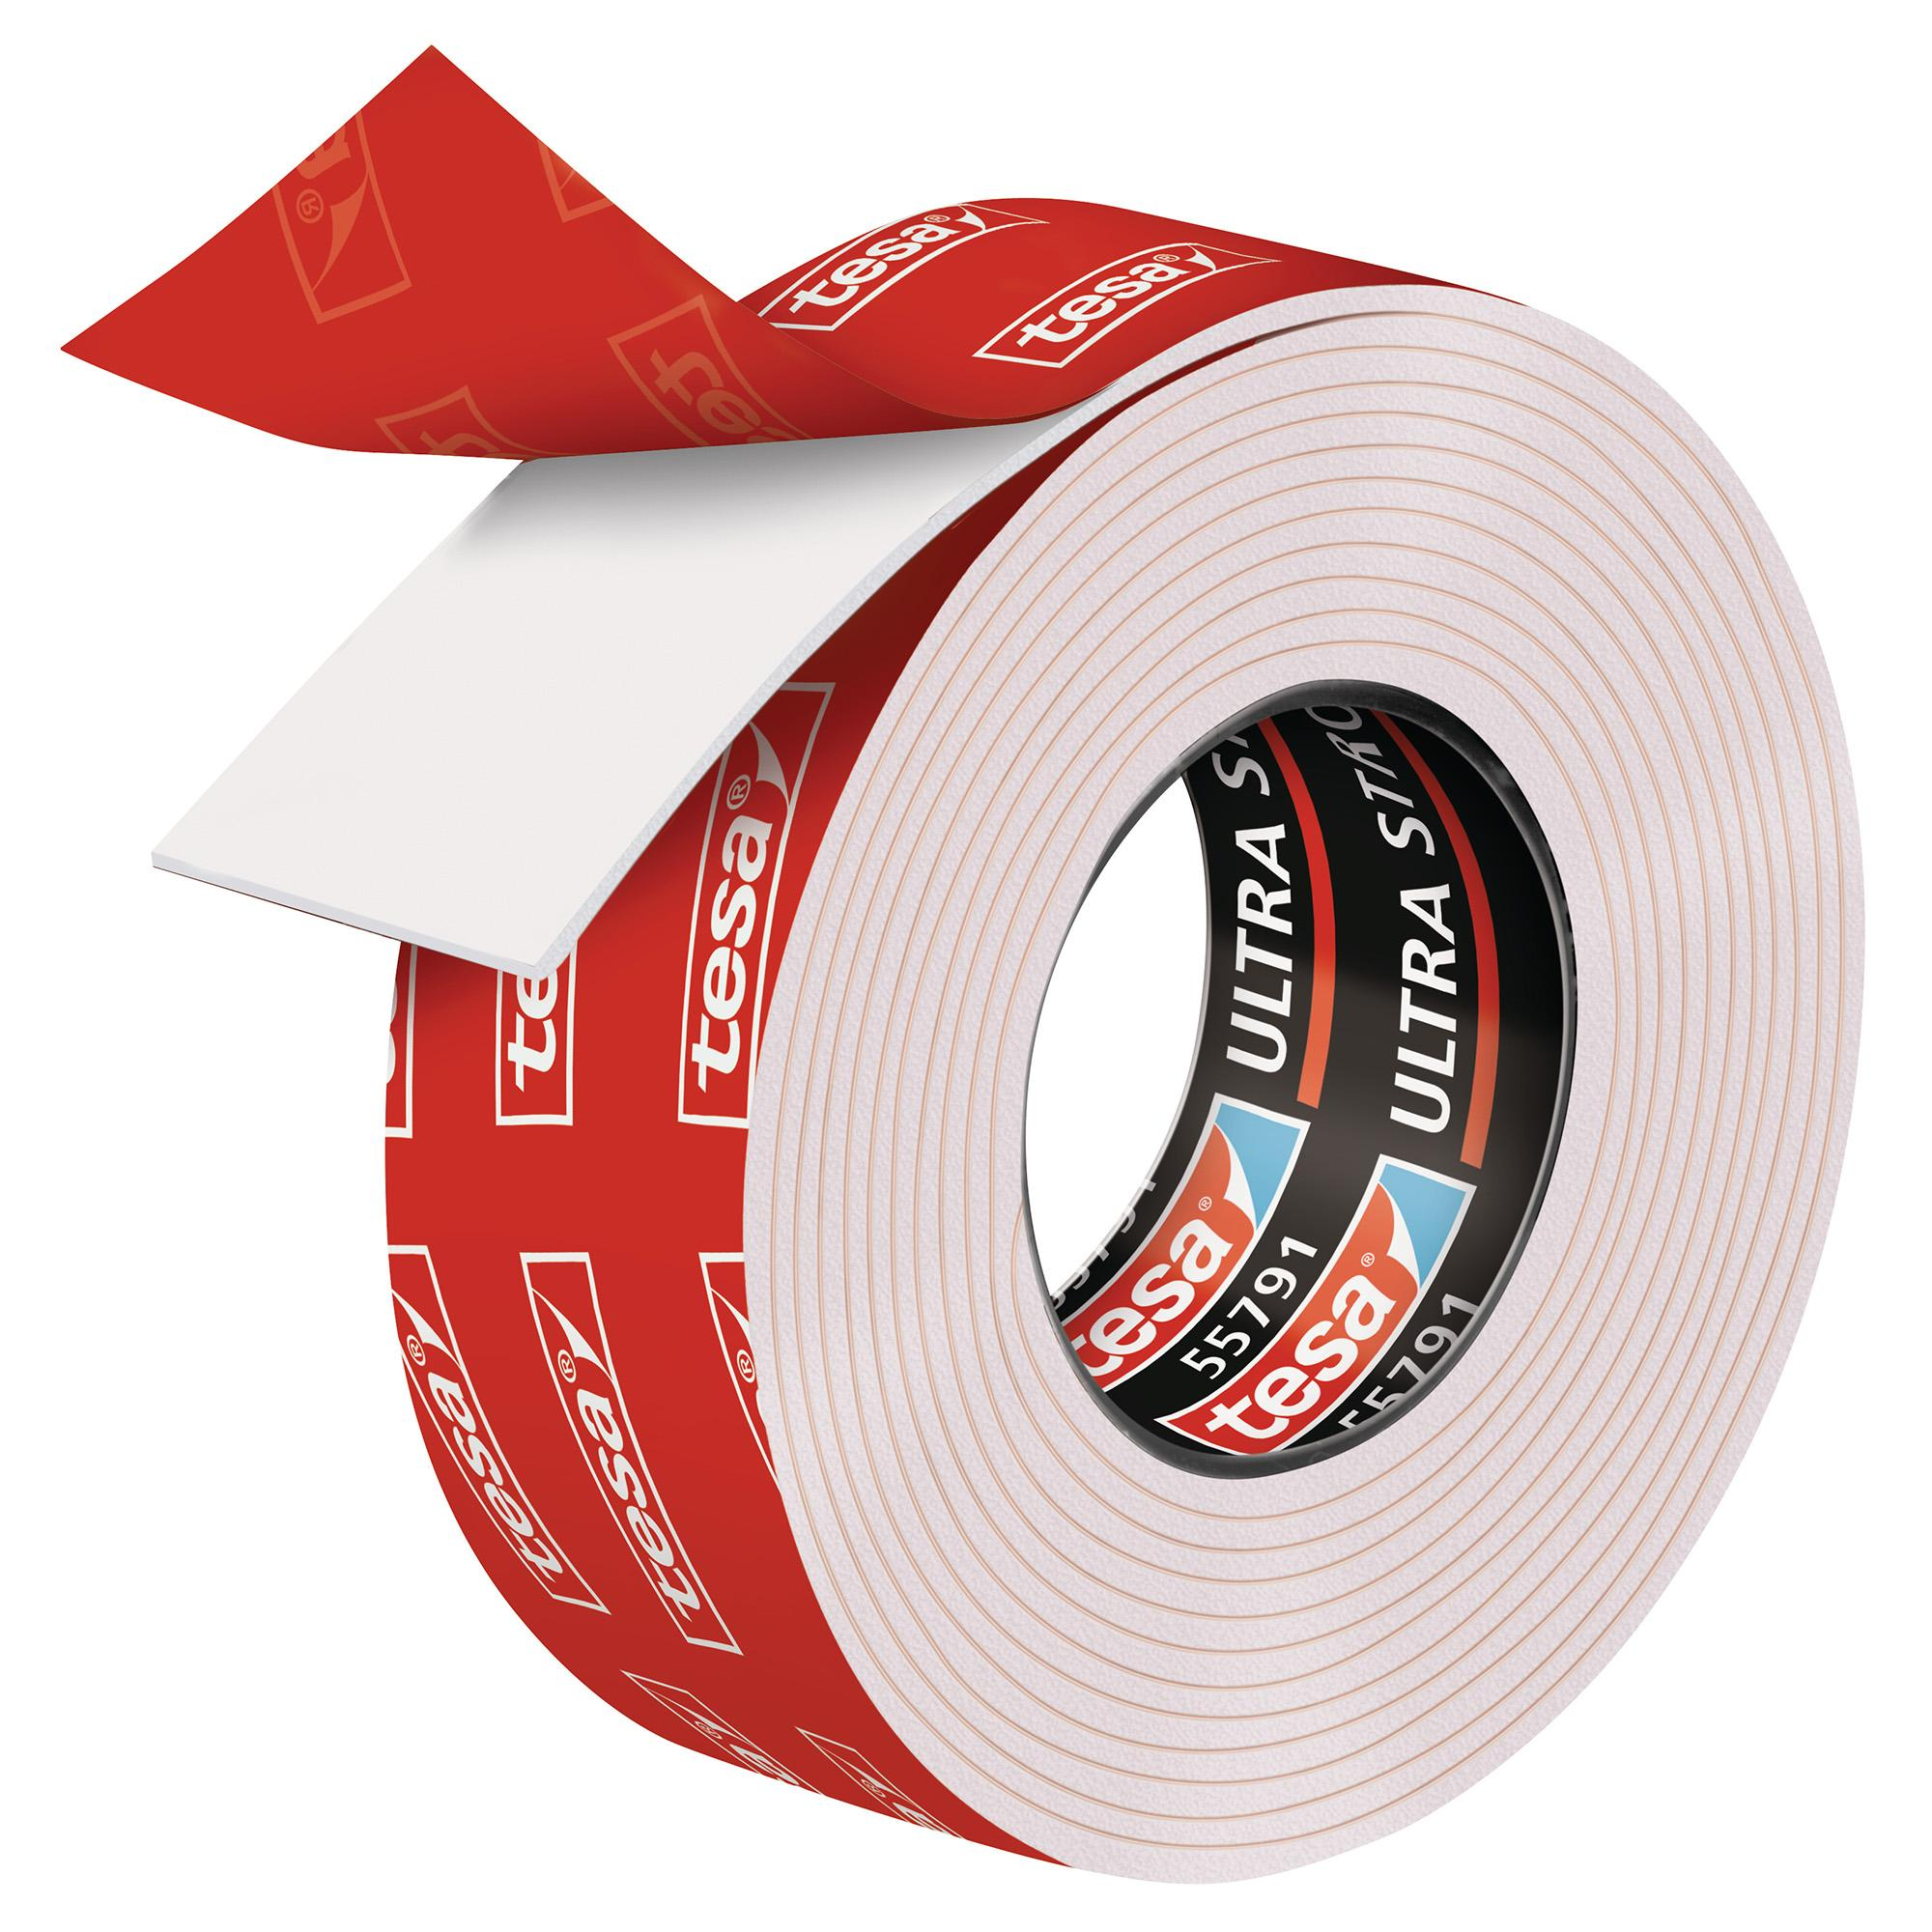 Sell Adhesive Tape Tesa Cheapest Best Quality Ph Store Wiring Loom Harness Cloth Fabric Php 199